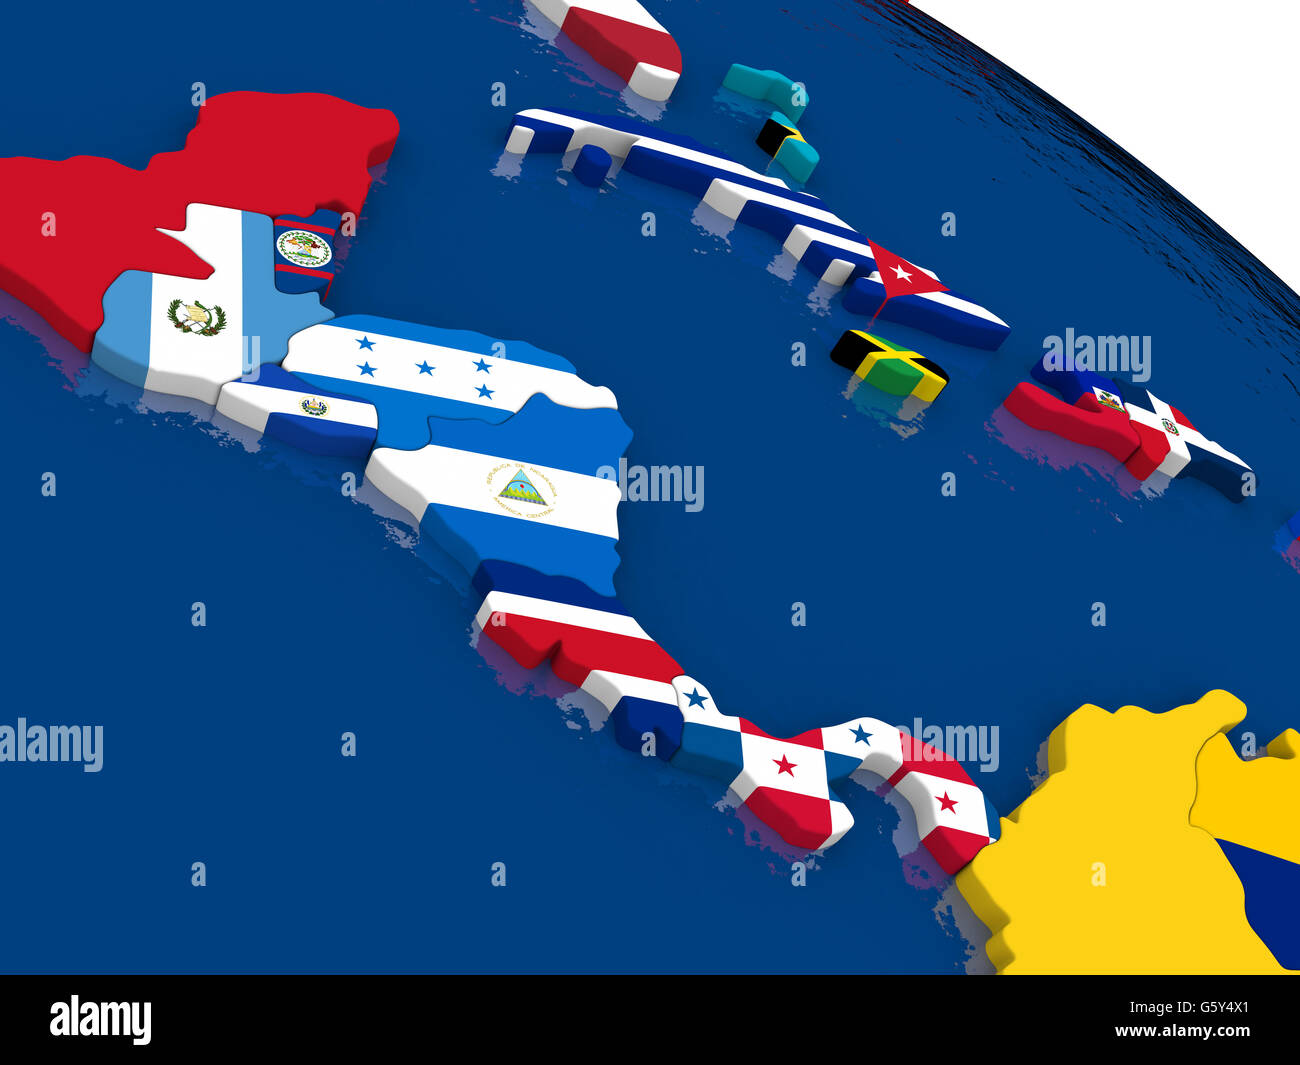 Map of Central America with embedded flags on 3D political ... Central America Political Map on central america funny map, central america road map, central america food, central america political system, central america states, nicaragua map, central america vegetation map, panama central america map, latin america map, central america thematic map, isthmus of panama map, central america satellite map, central america rivers, and central america map, south america map, central america google maps, lesser antilles map, central america terrain map, central america home,